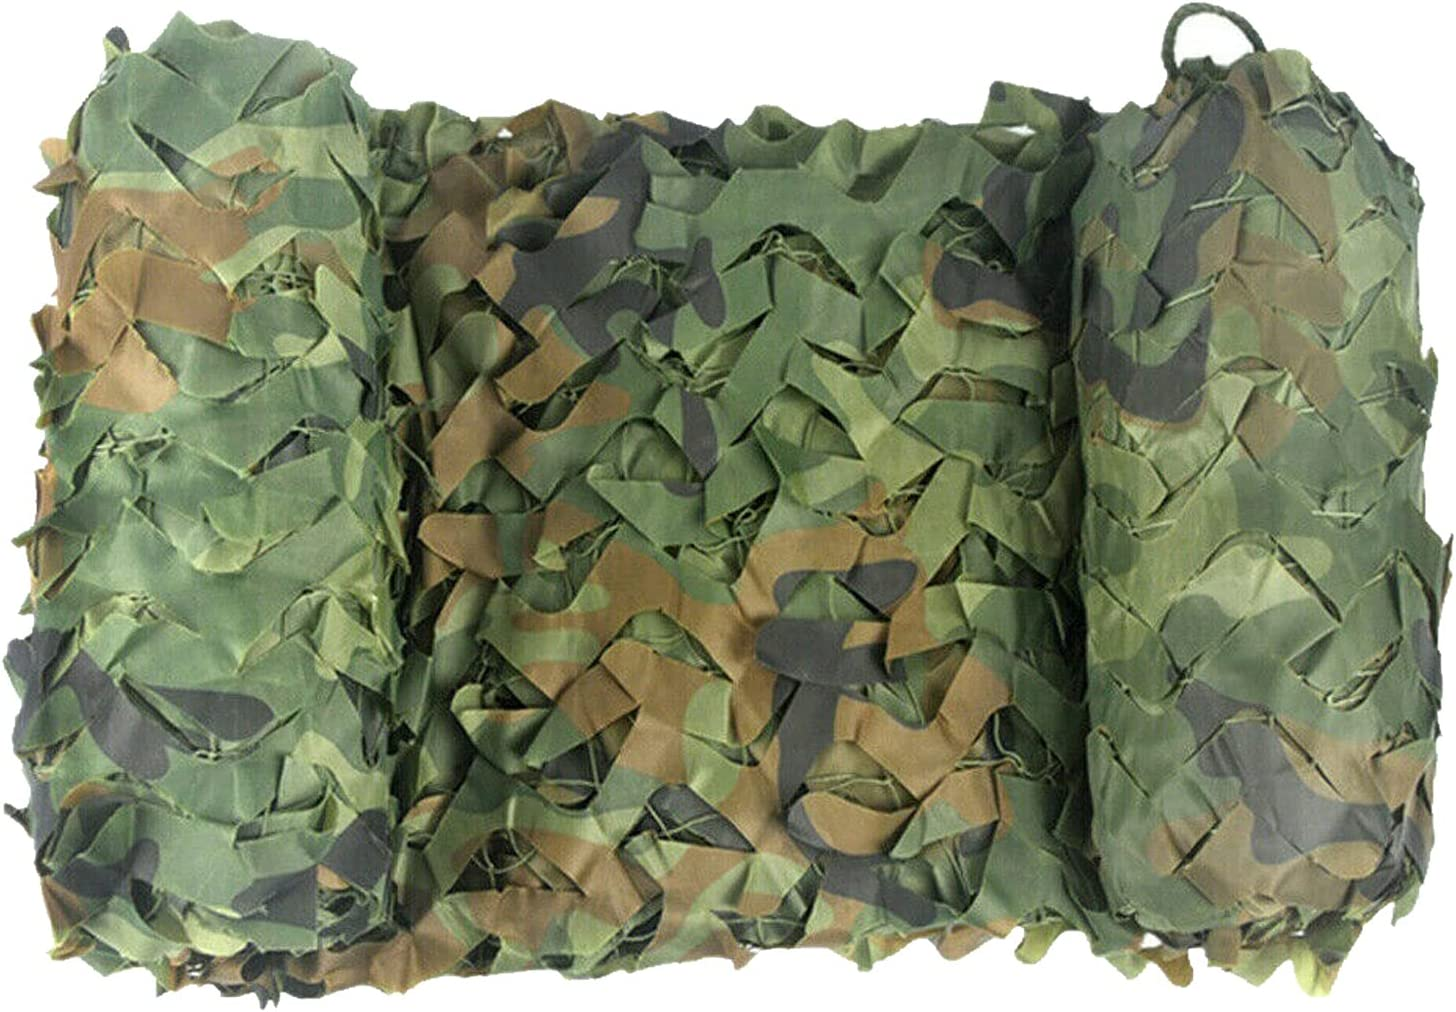 ZCBHSD Camo Netting Under blast sales Forest Net Genuine Free Shipping for Sunshade Camping Shootin